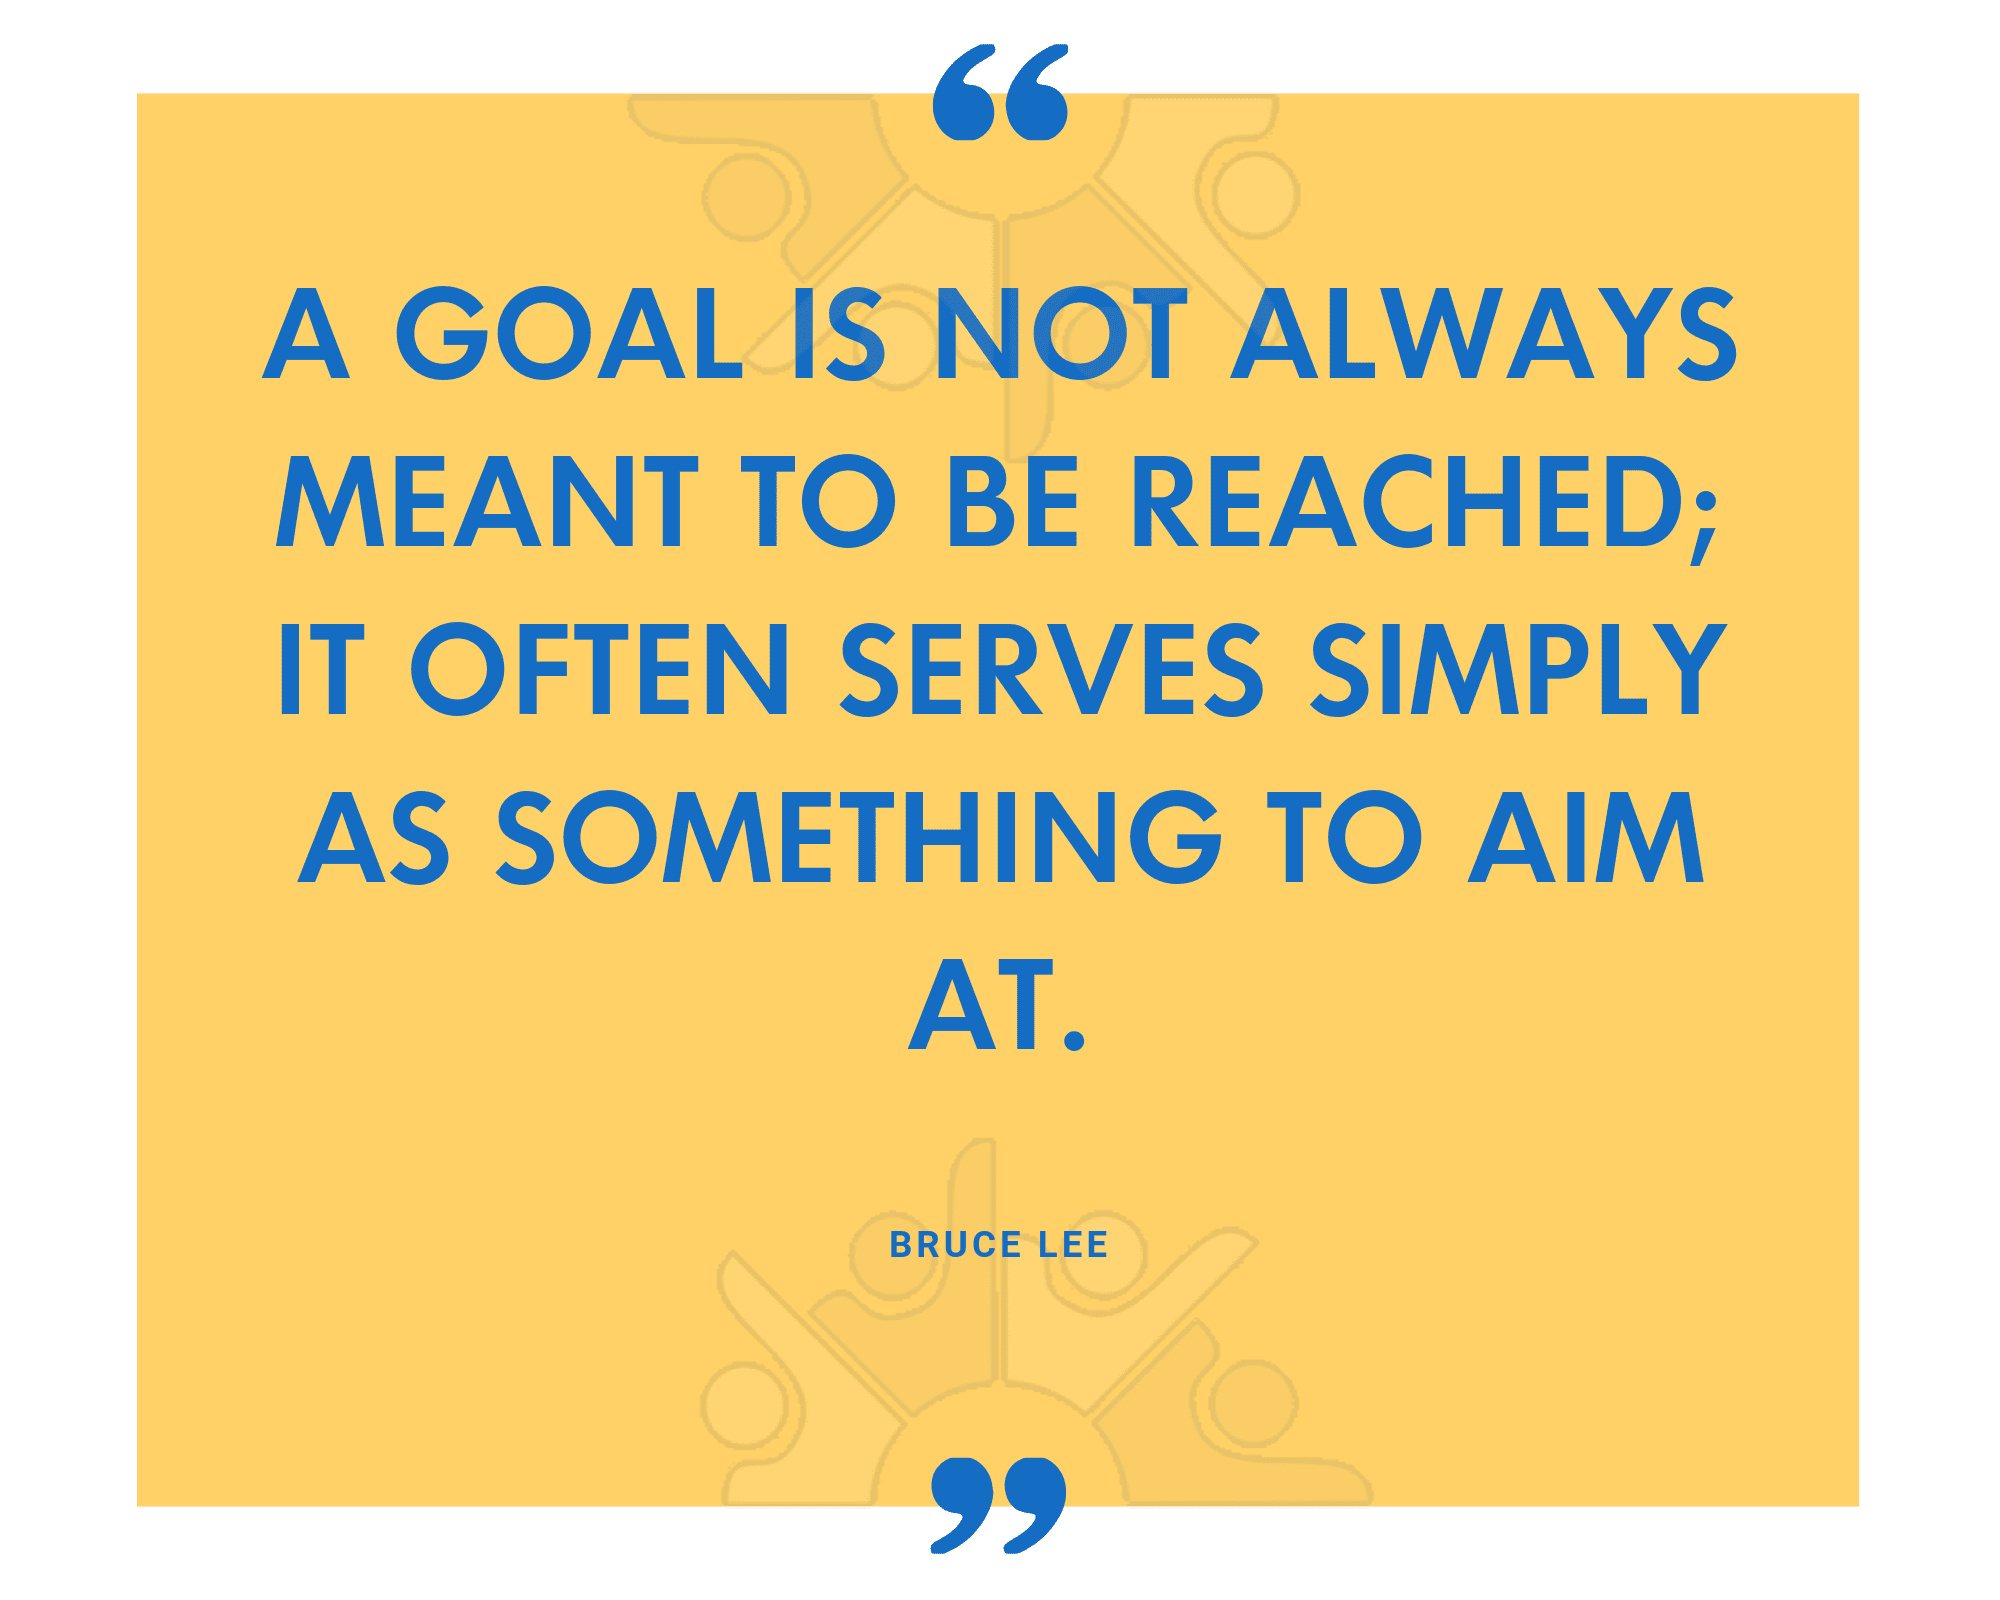 A goal is not always meant to be reached; it often serves simply as something to aim at.